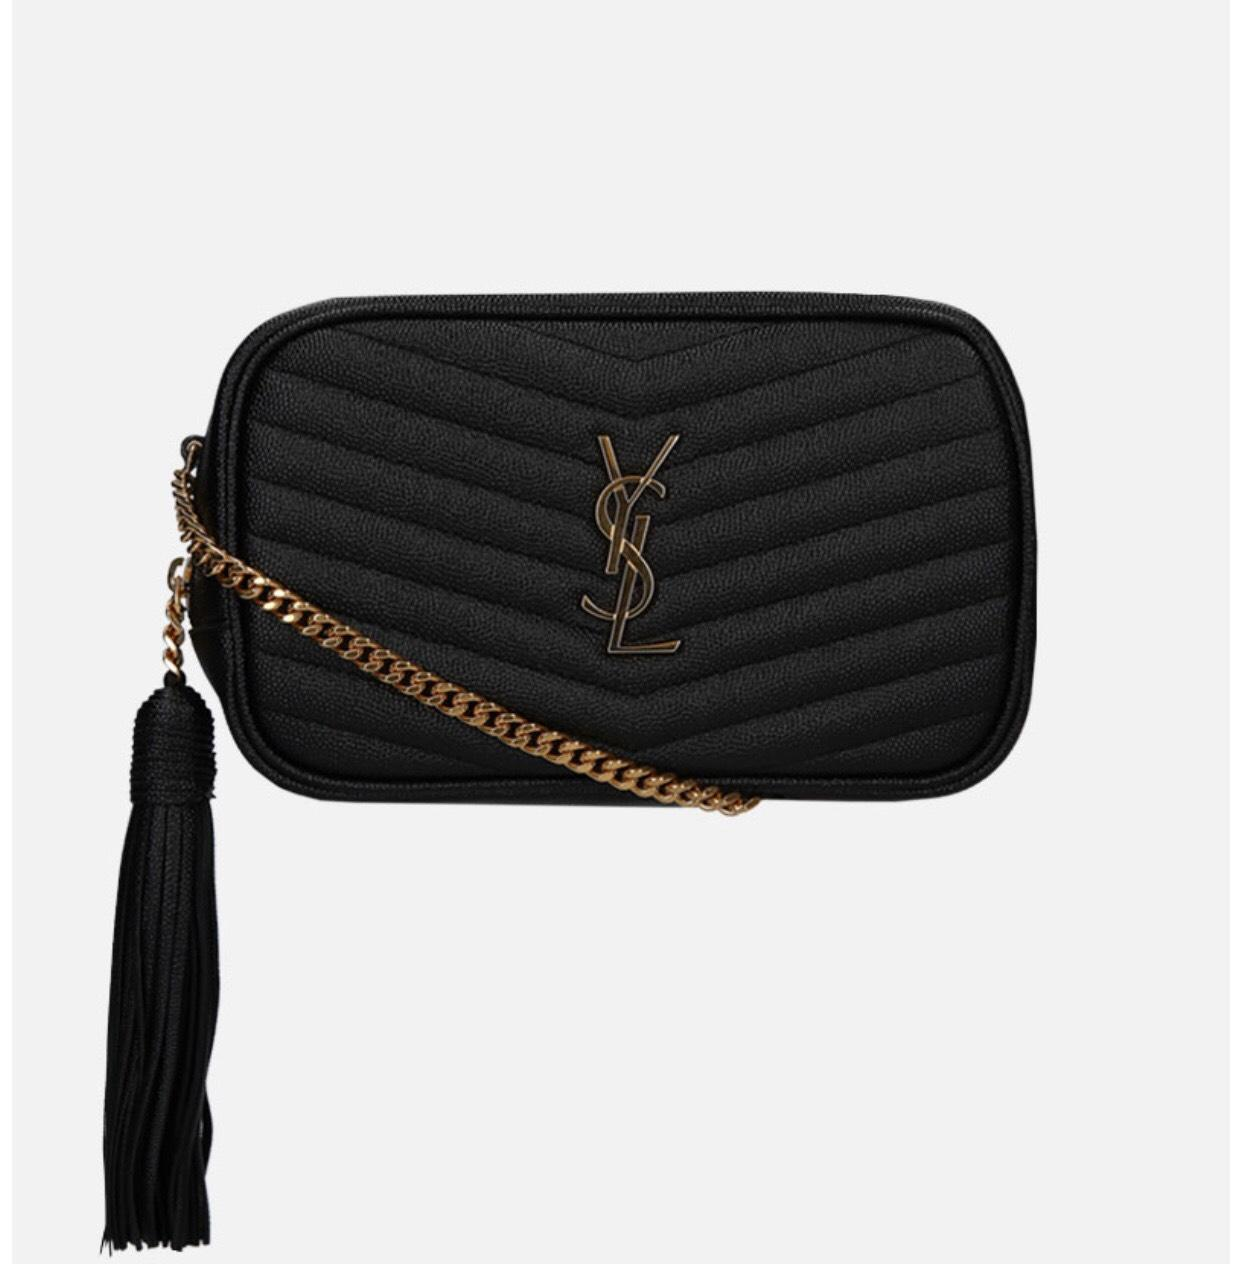 Saint Laurent Camera Bags , Up to 70% off at Tradesy